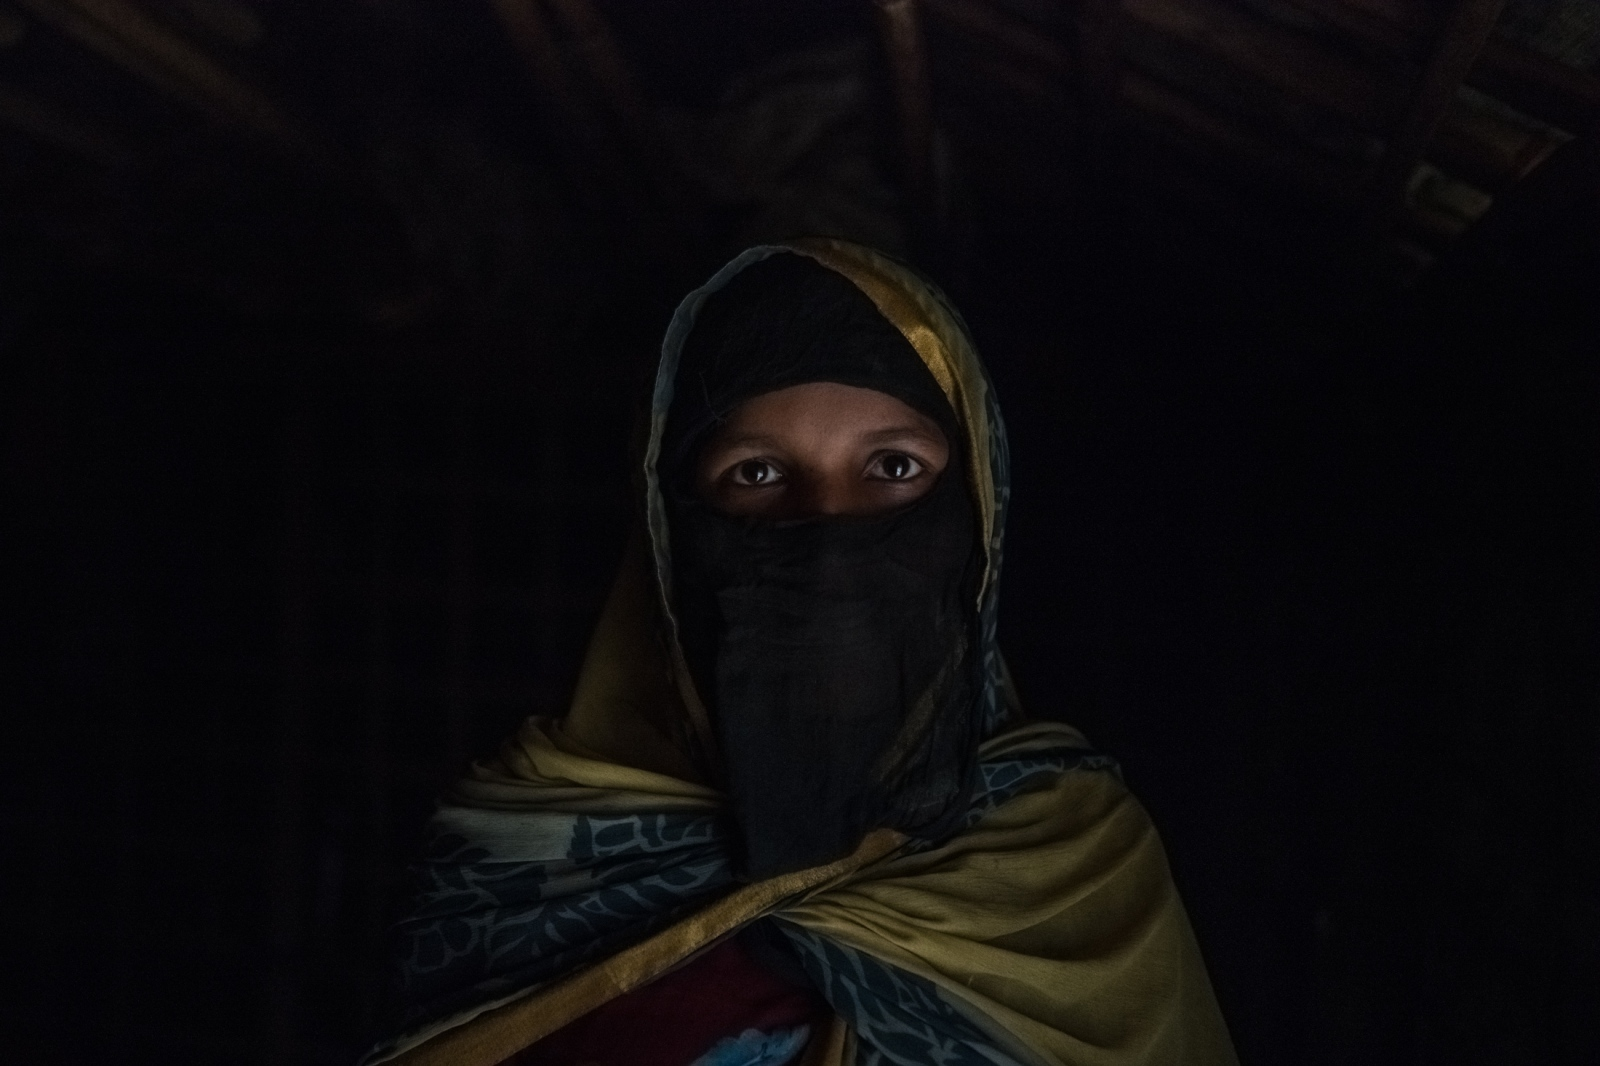 Noor, a Rohingya refugee who may be 18 years old, at most, was gang-raped by soldiers in Myanmar